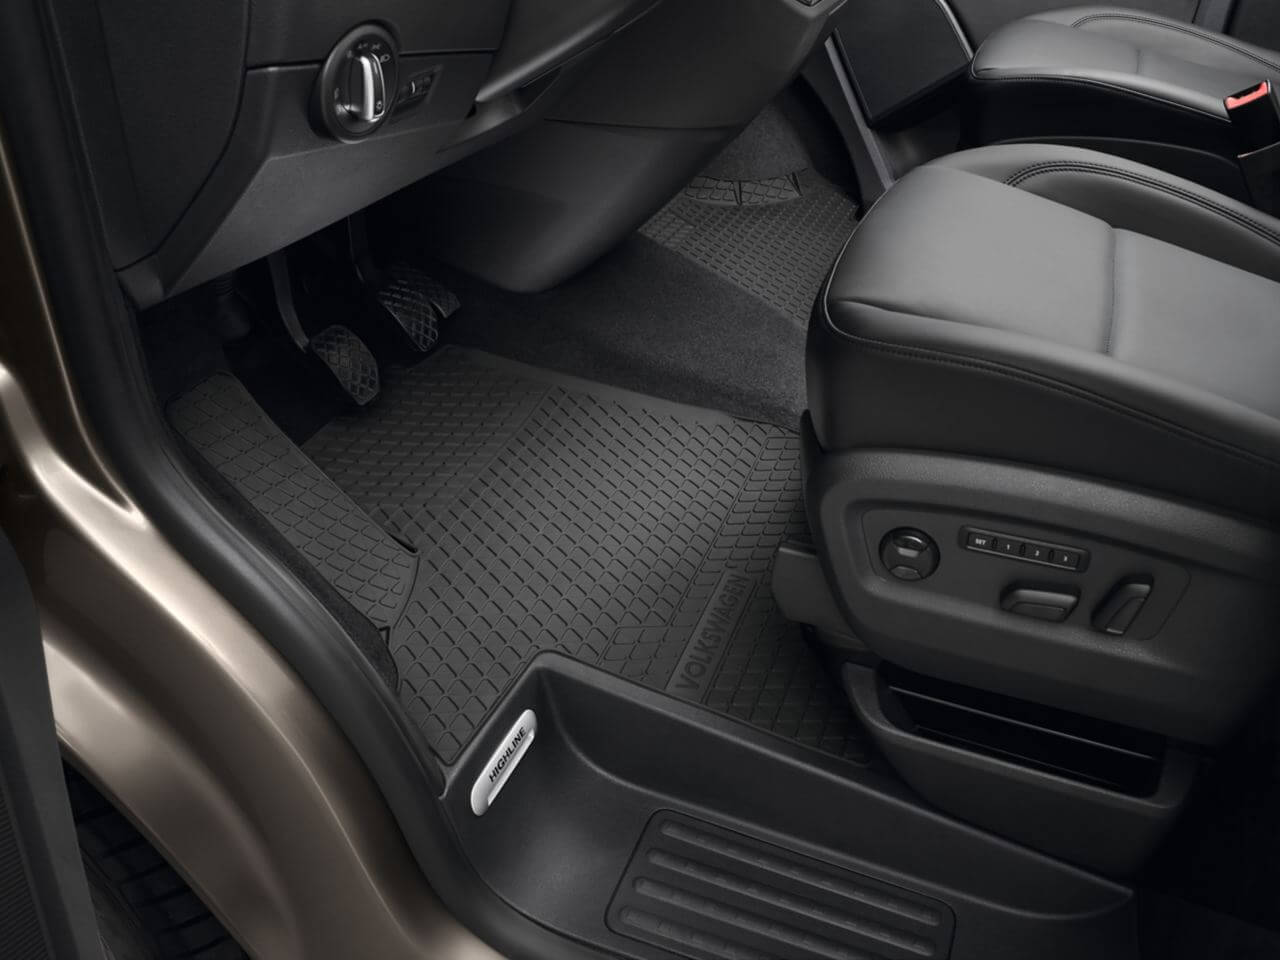 Rubber floor mats Travel and comfort Image